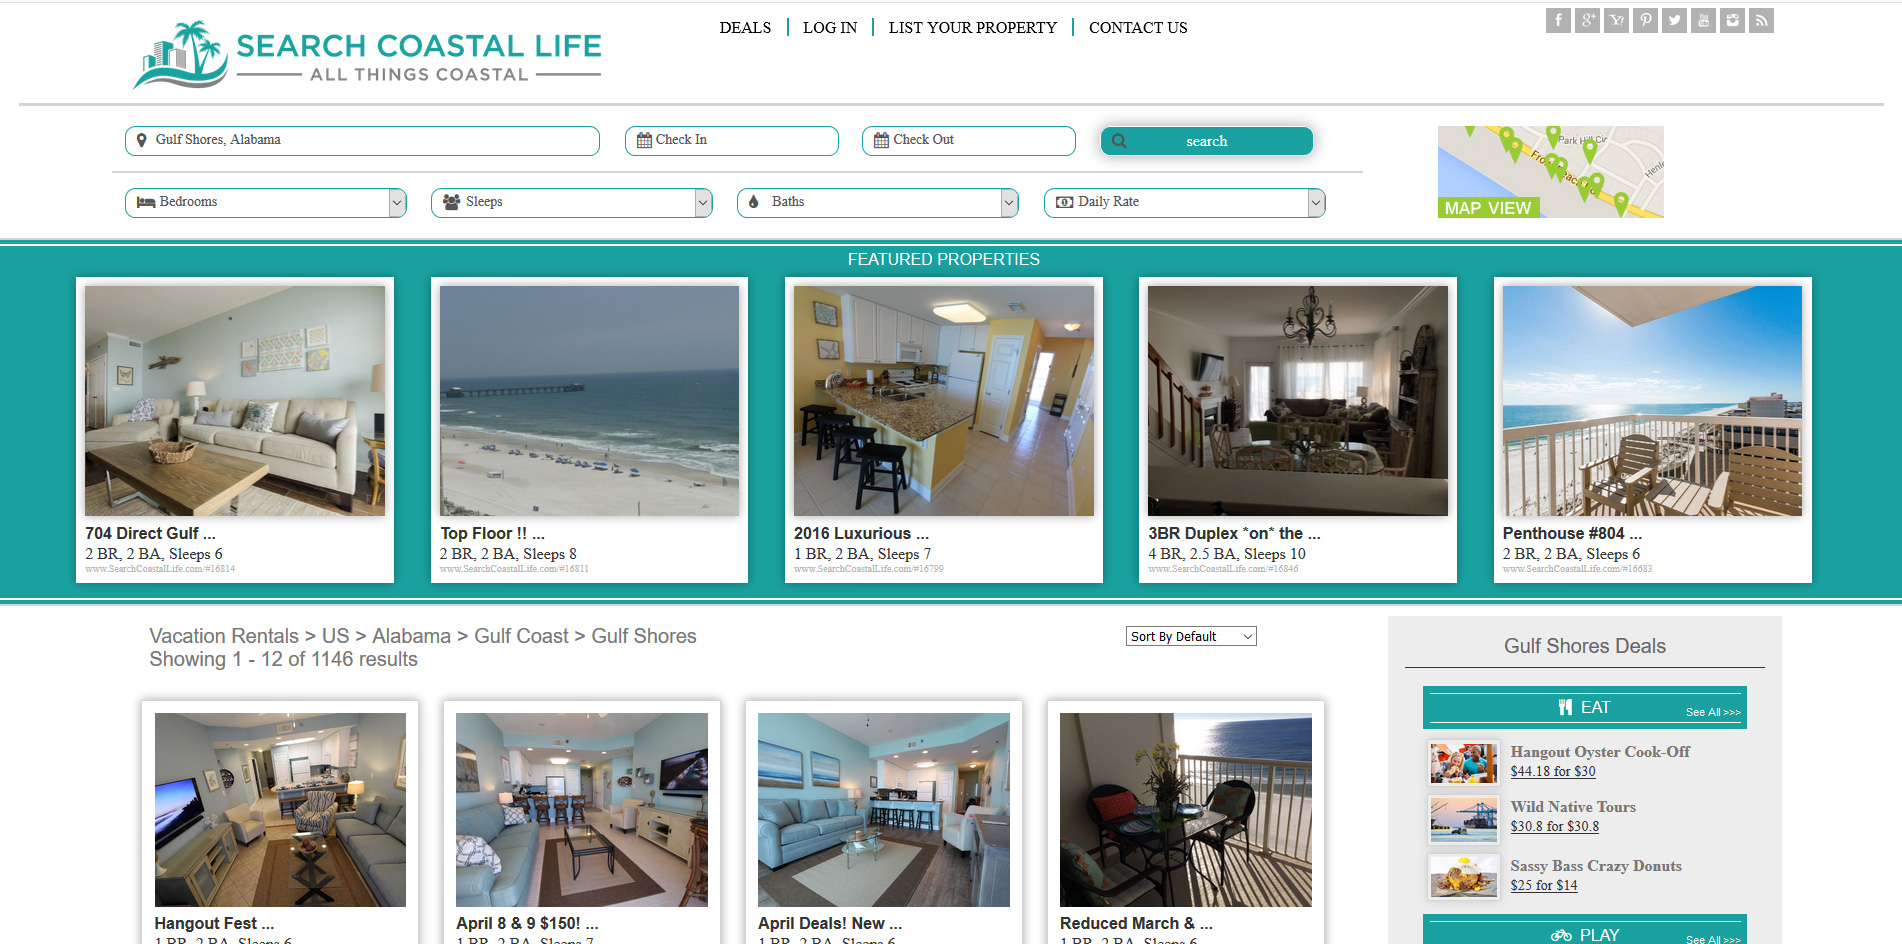 Travel Website Vacation and Travel Website - Search Coastal Life